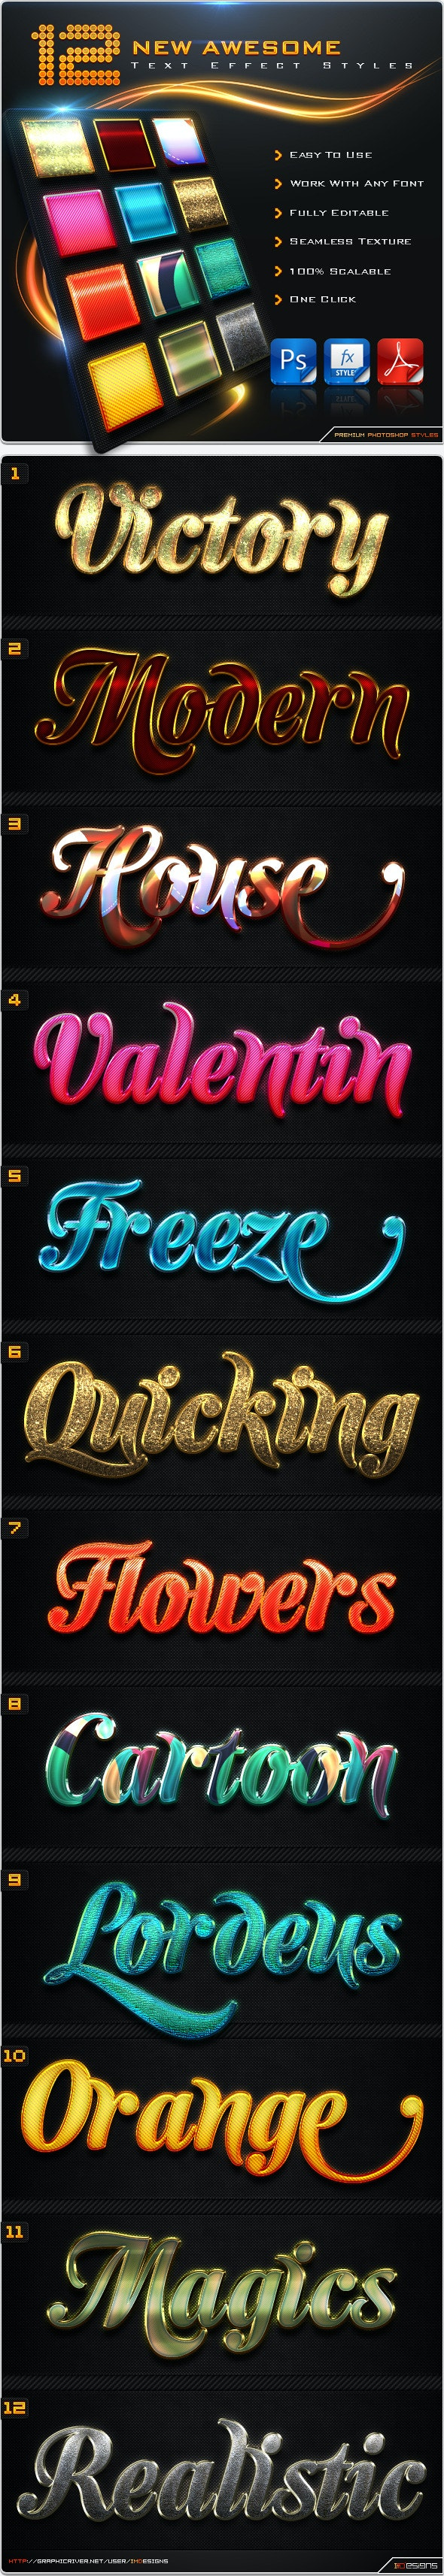 12 New Text Effect Styles - Text Effects Styles